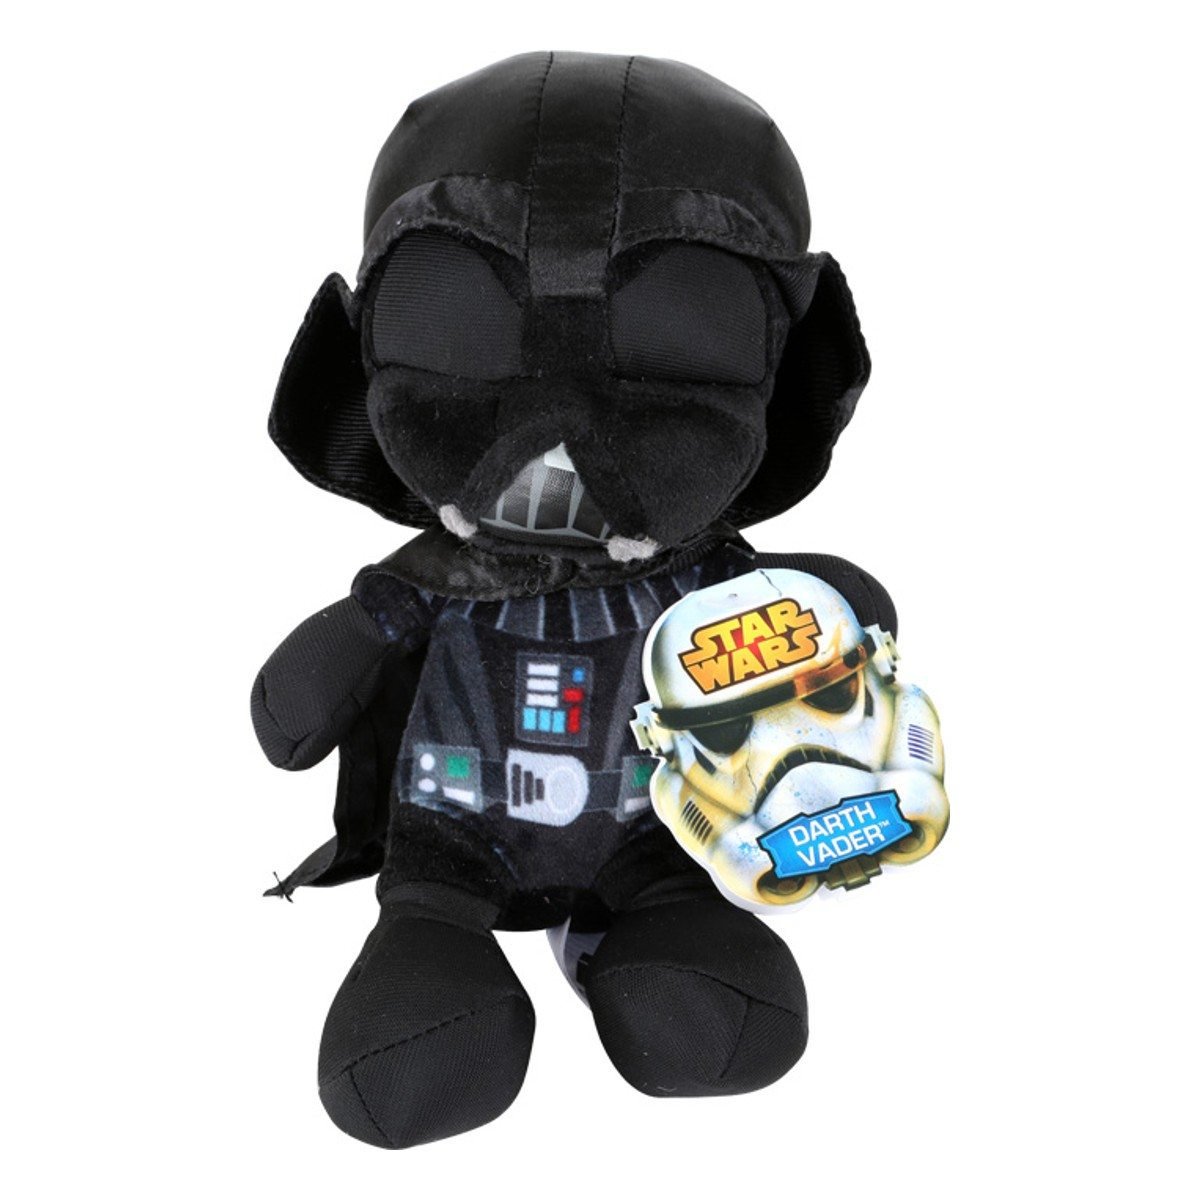 star wars peluche dark vador. Black Bedroom Furniture Sets. Home Design Ideas